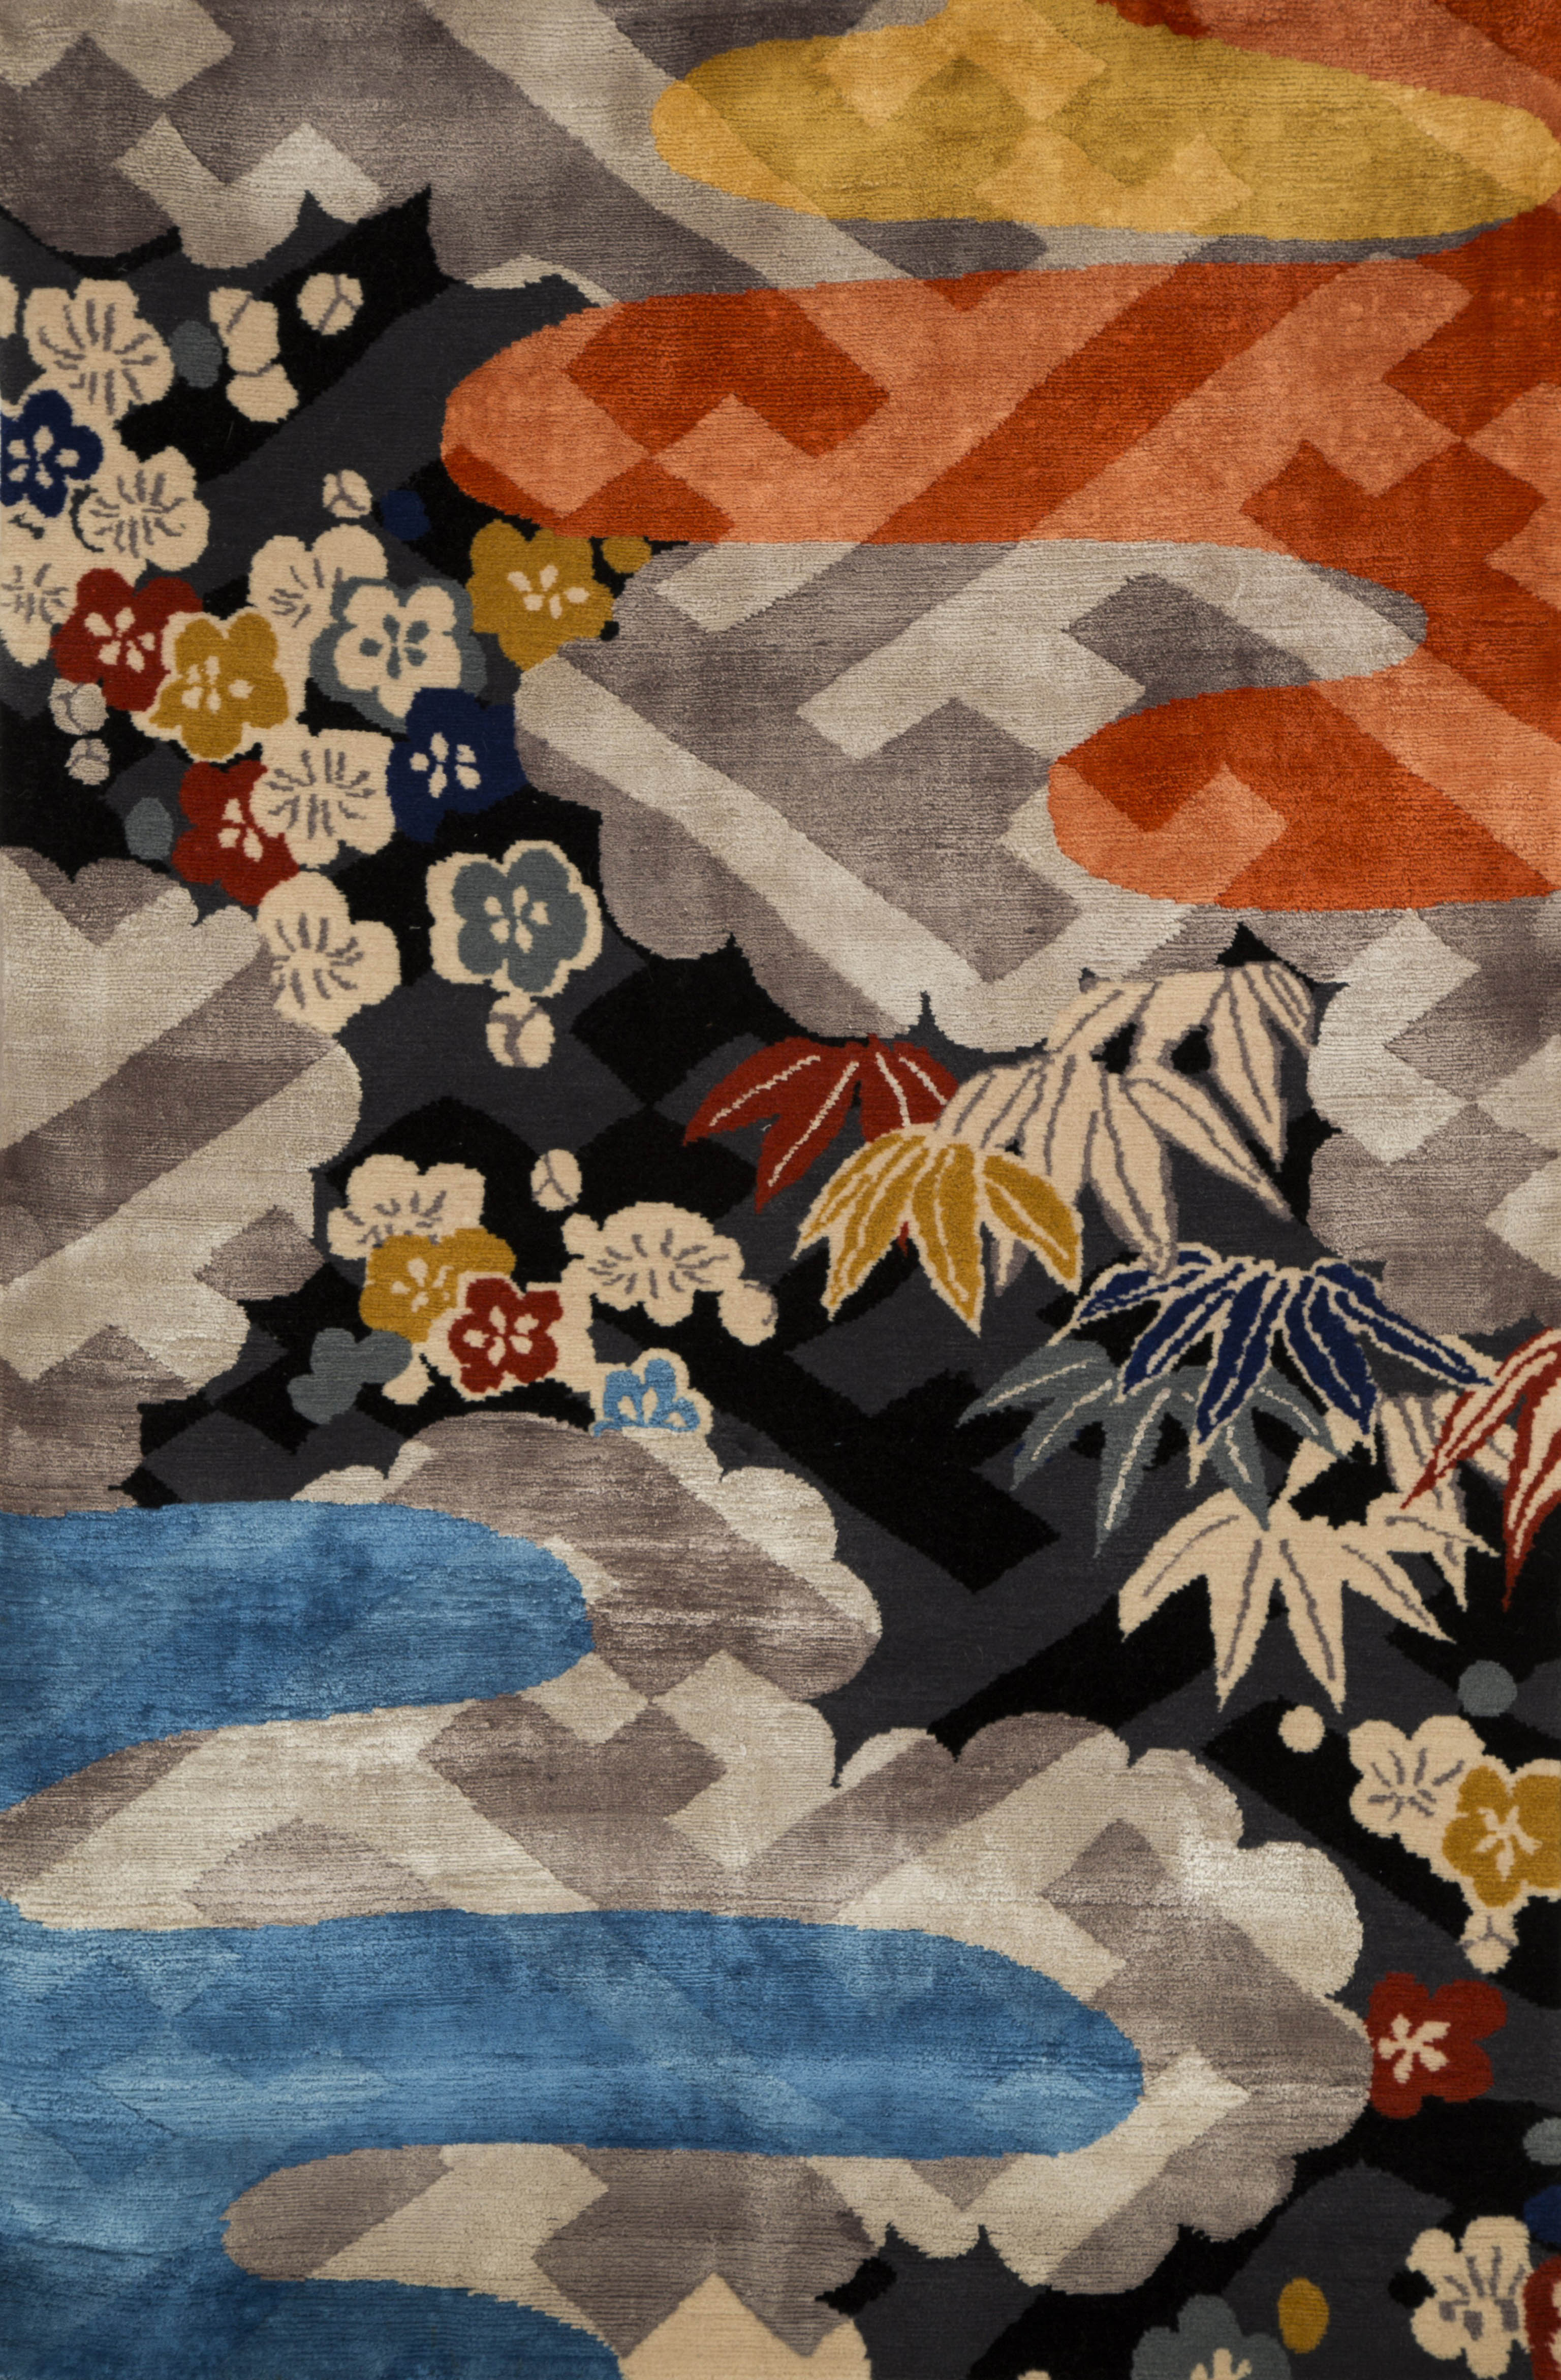 'Cirrus V' by UK Heritage Rugs was inspired by a Japanese Kimono. | Image courtesy of UK Heritage Rugs.